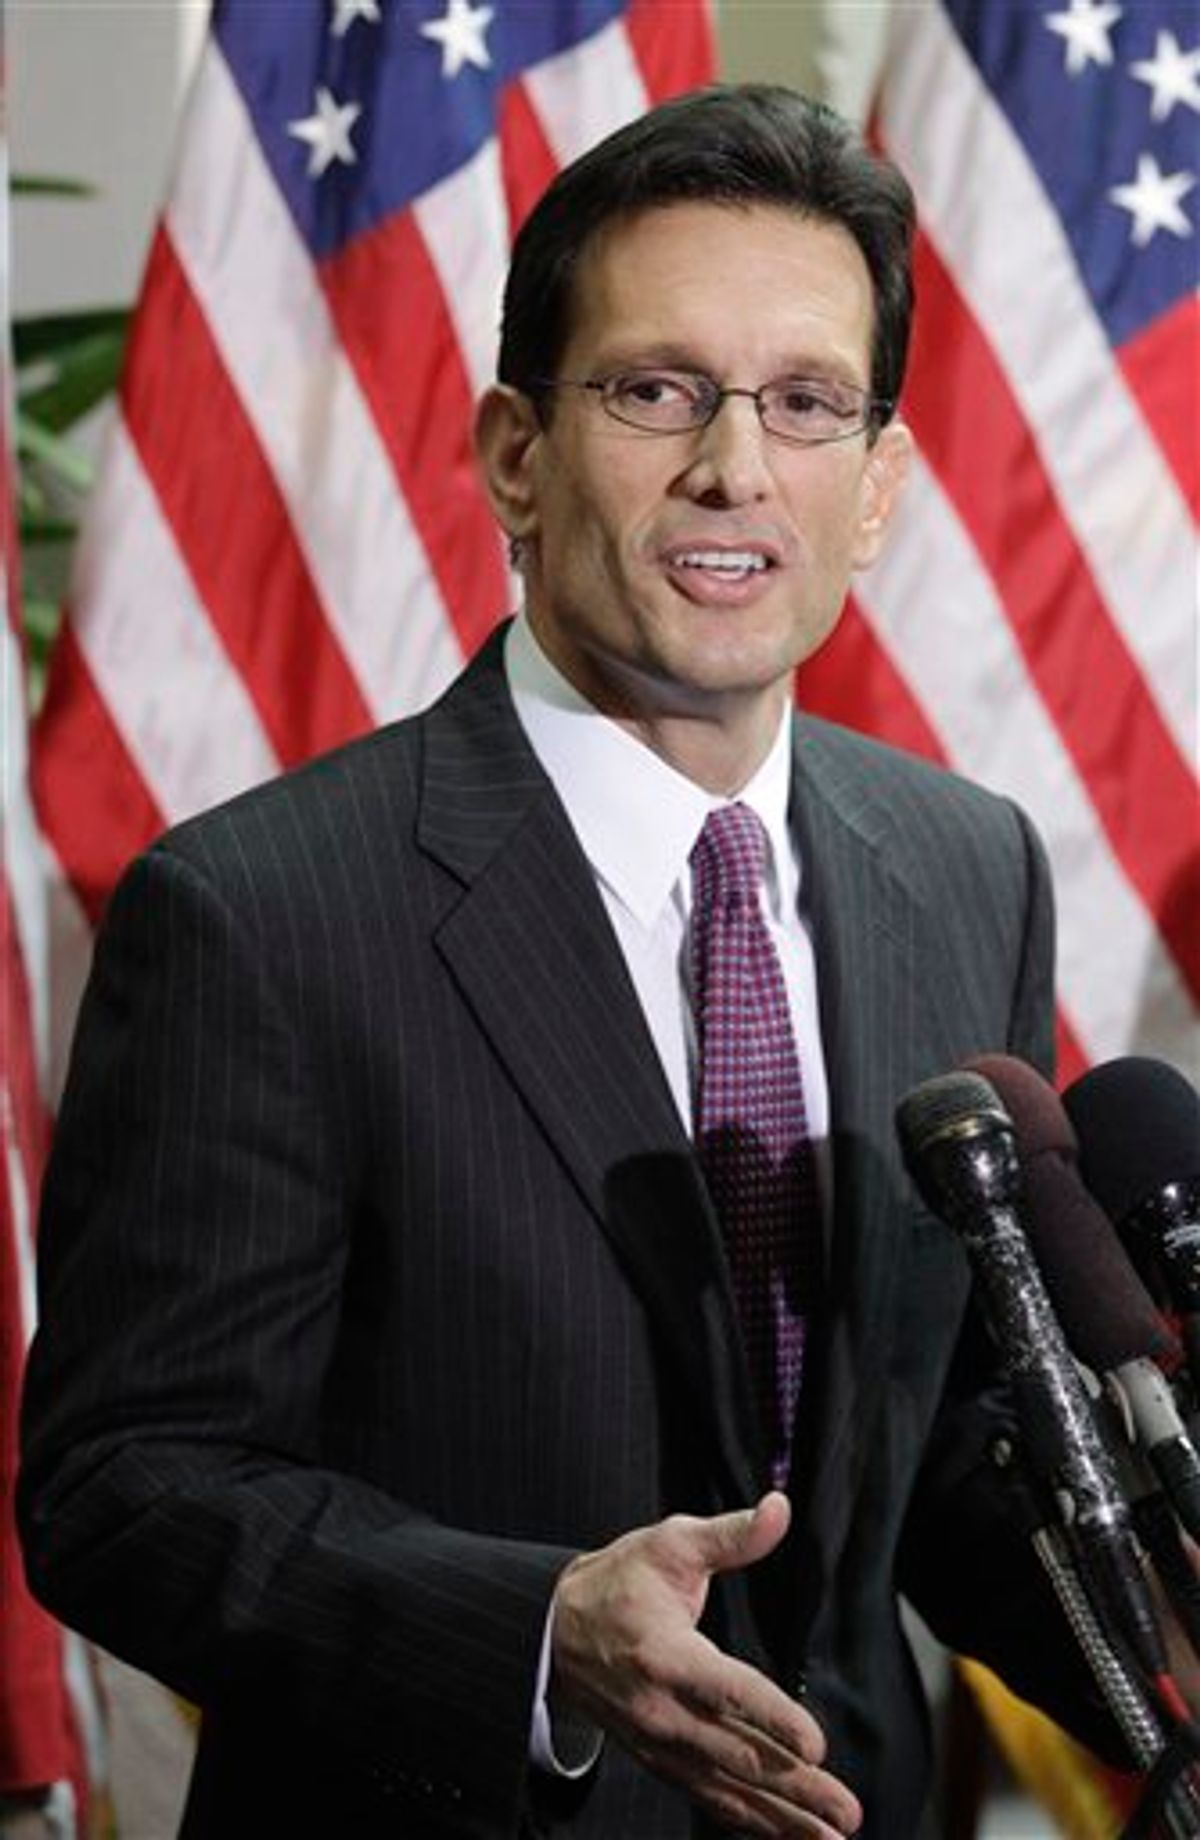 House Majority Leader Eric Cantor of Va., speaks to reporters on Capitol Hill in Washington, Tuesday, Jan. 25, 2011, after a closed GOP caucus meeting ahead of President Barack Obama's State of the Union speech. (AP Photo/Charles Dharapak)  (AP)